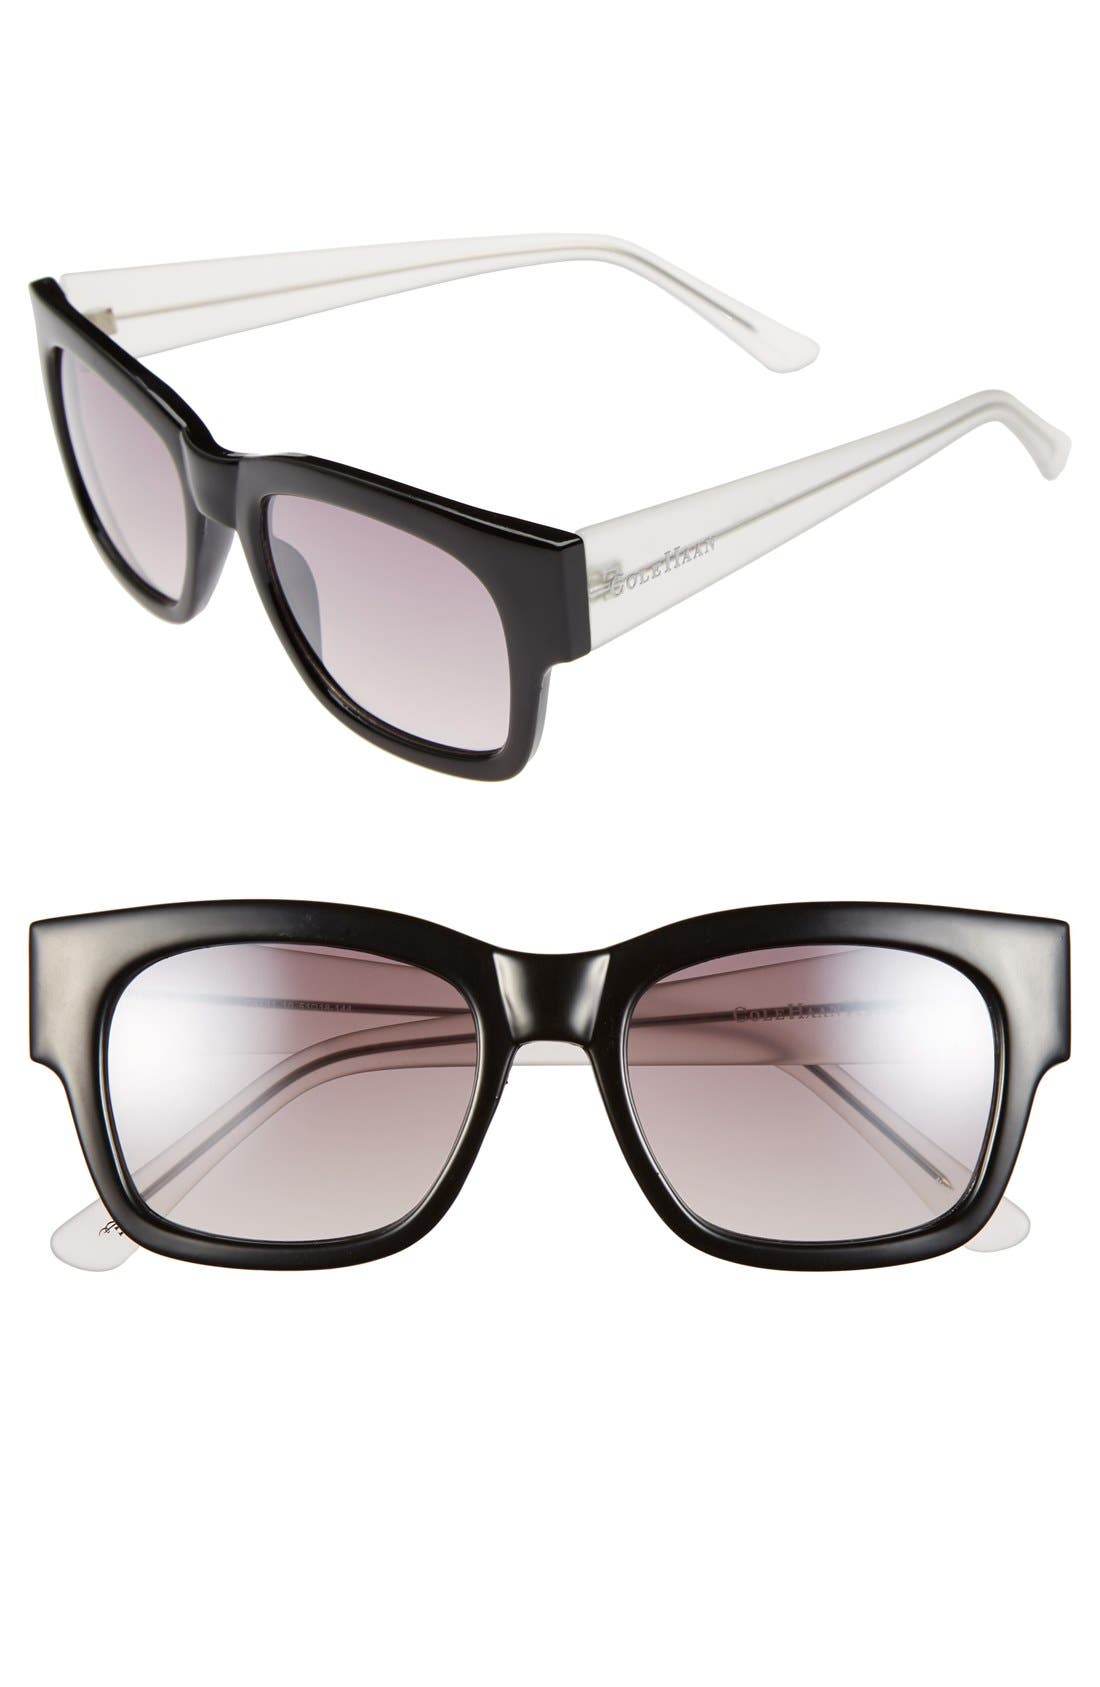 51mm Rectangular Sunglasses,                         Main,                         color, Black